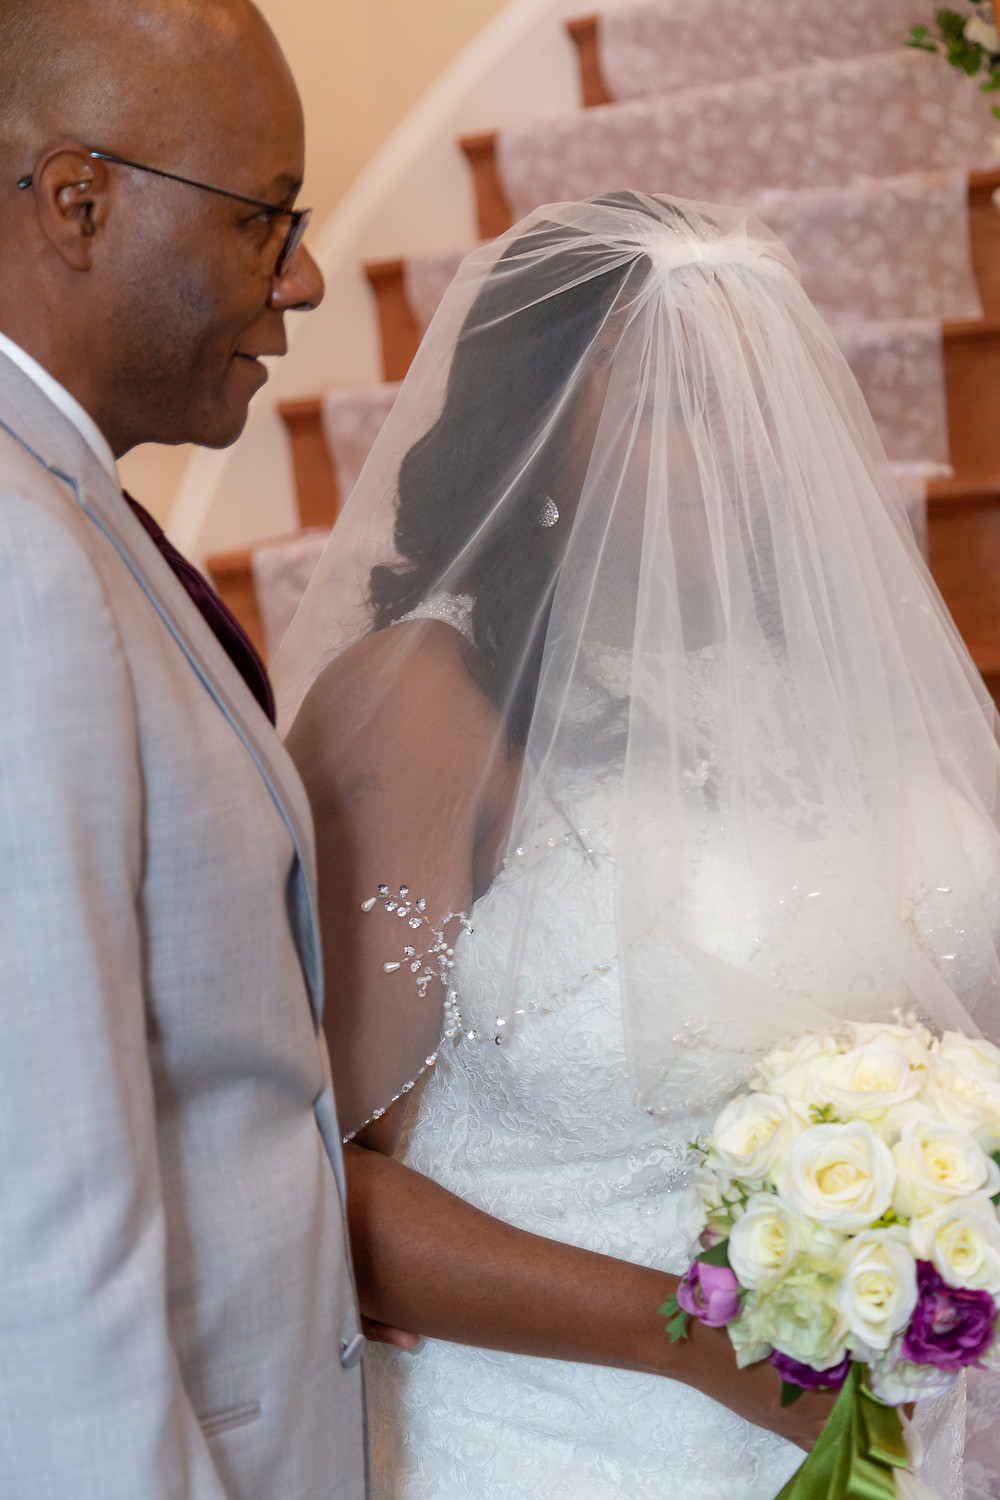 The bride and her father during the wedding ceremony in Fairfax, Virginia.